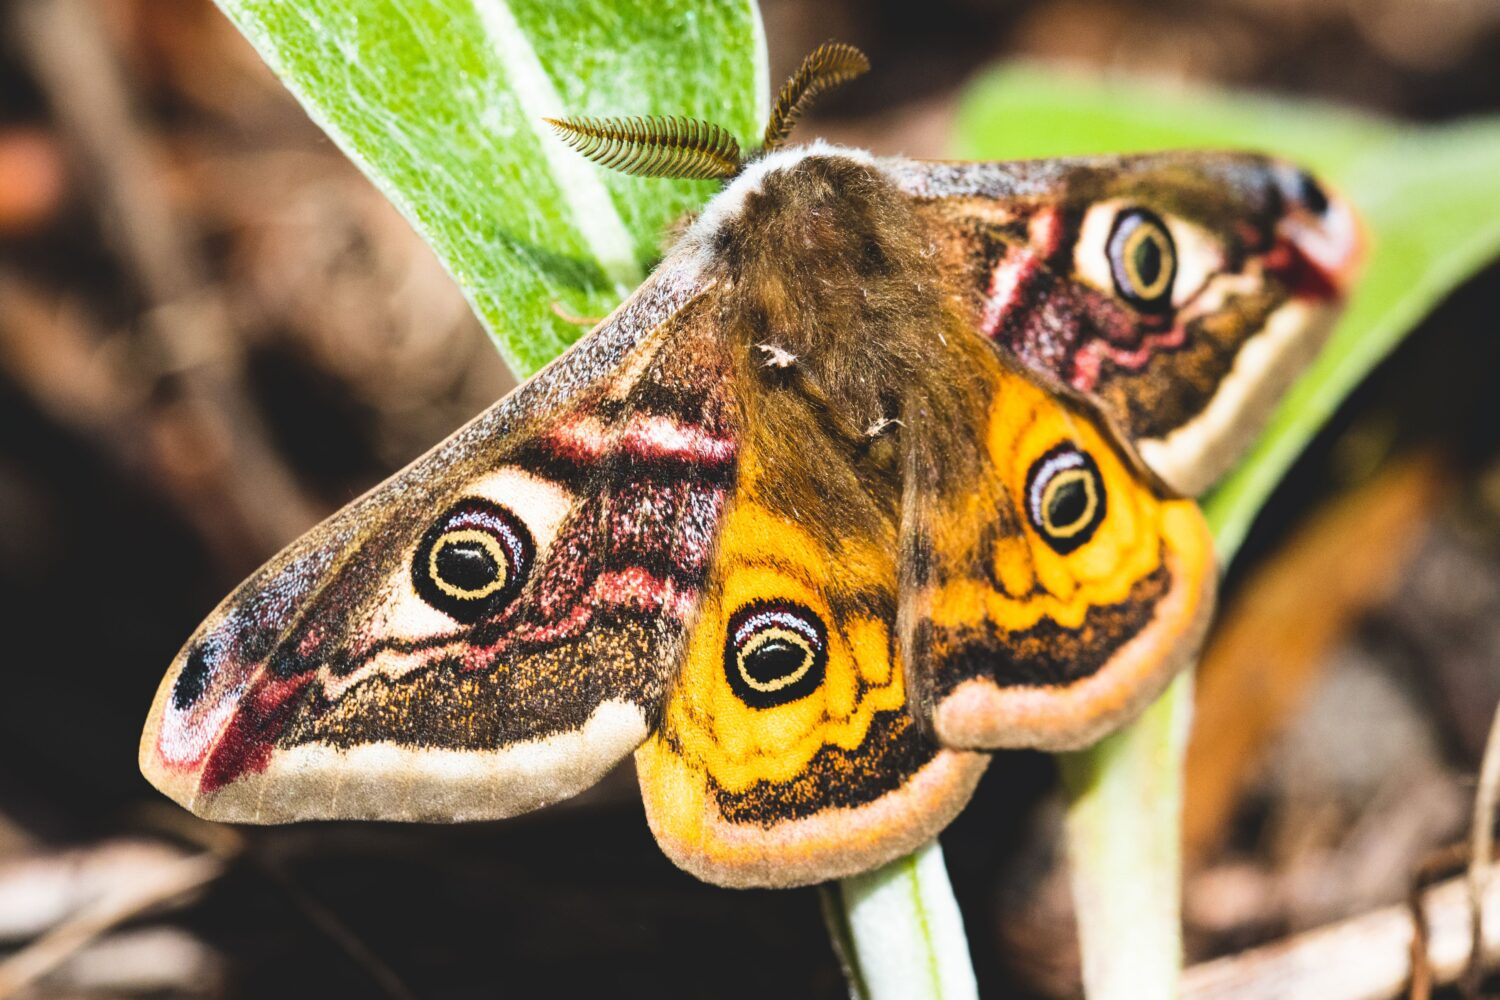 Emperor moth with wings spread